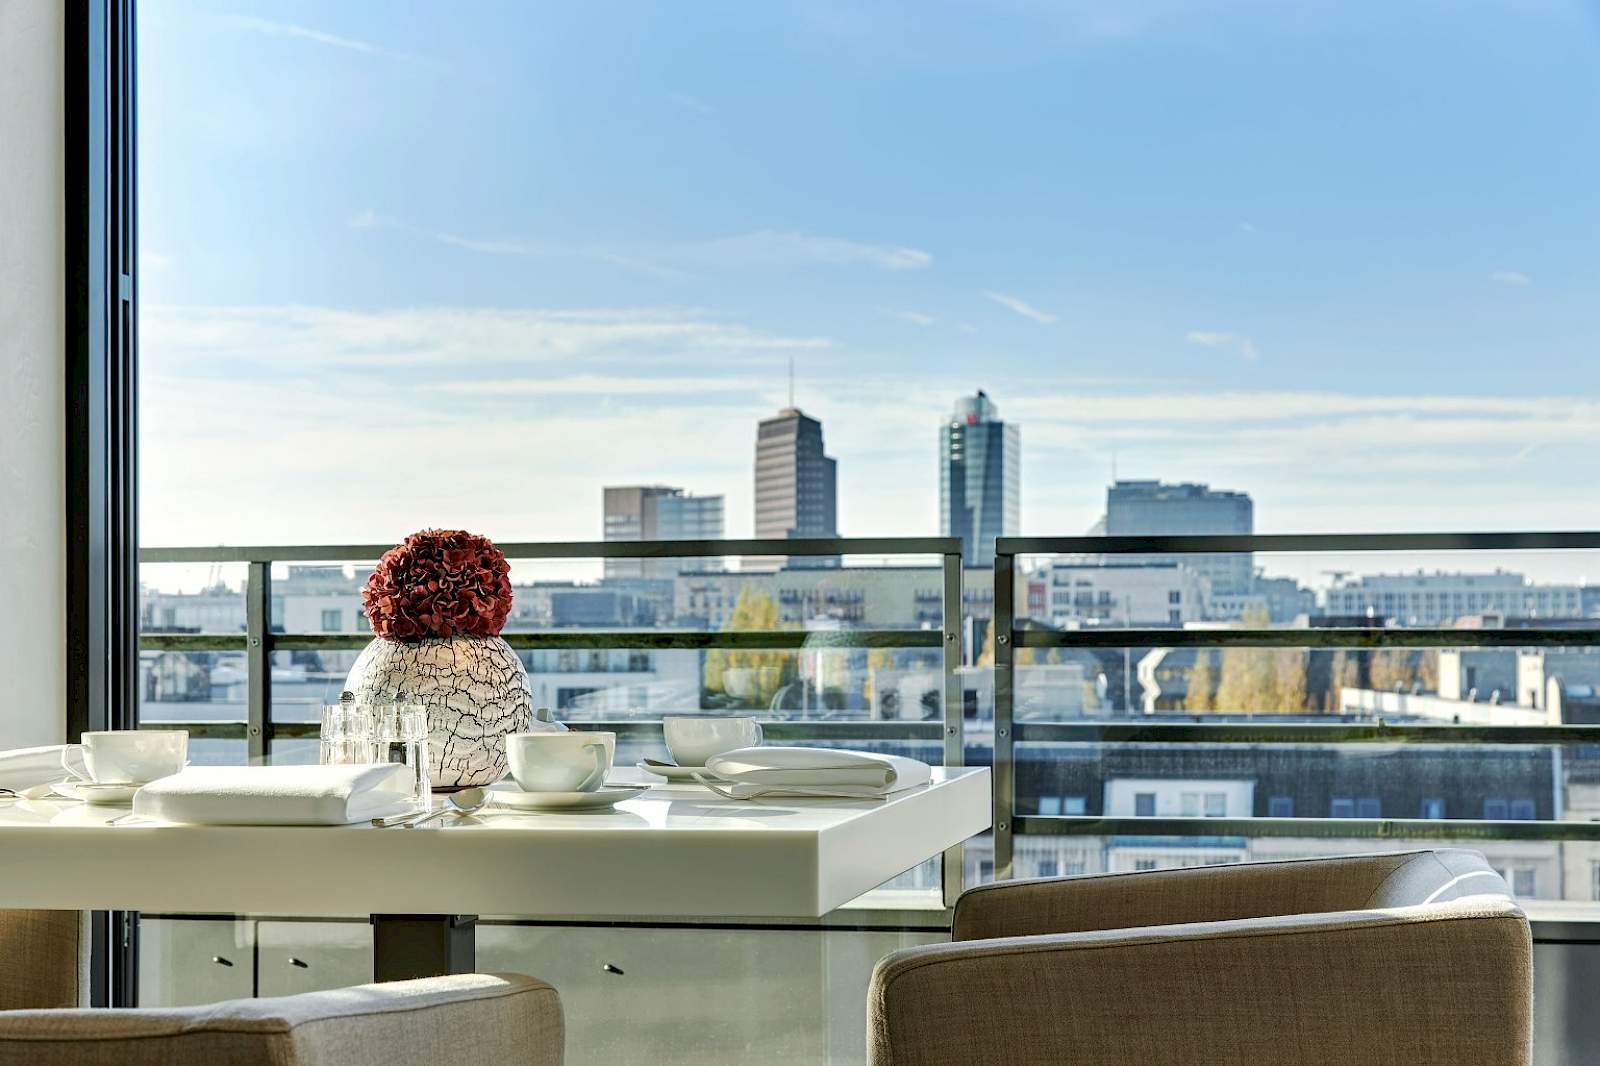 Enjoy this breathtaking view in Berlin's direct center from The Mandala Suites